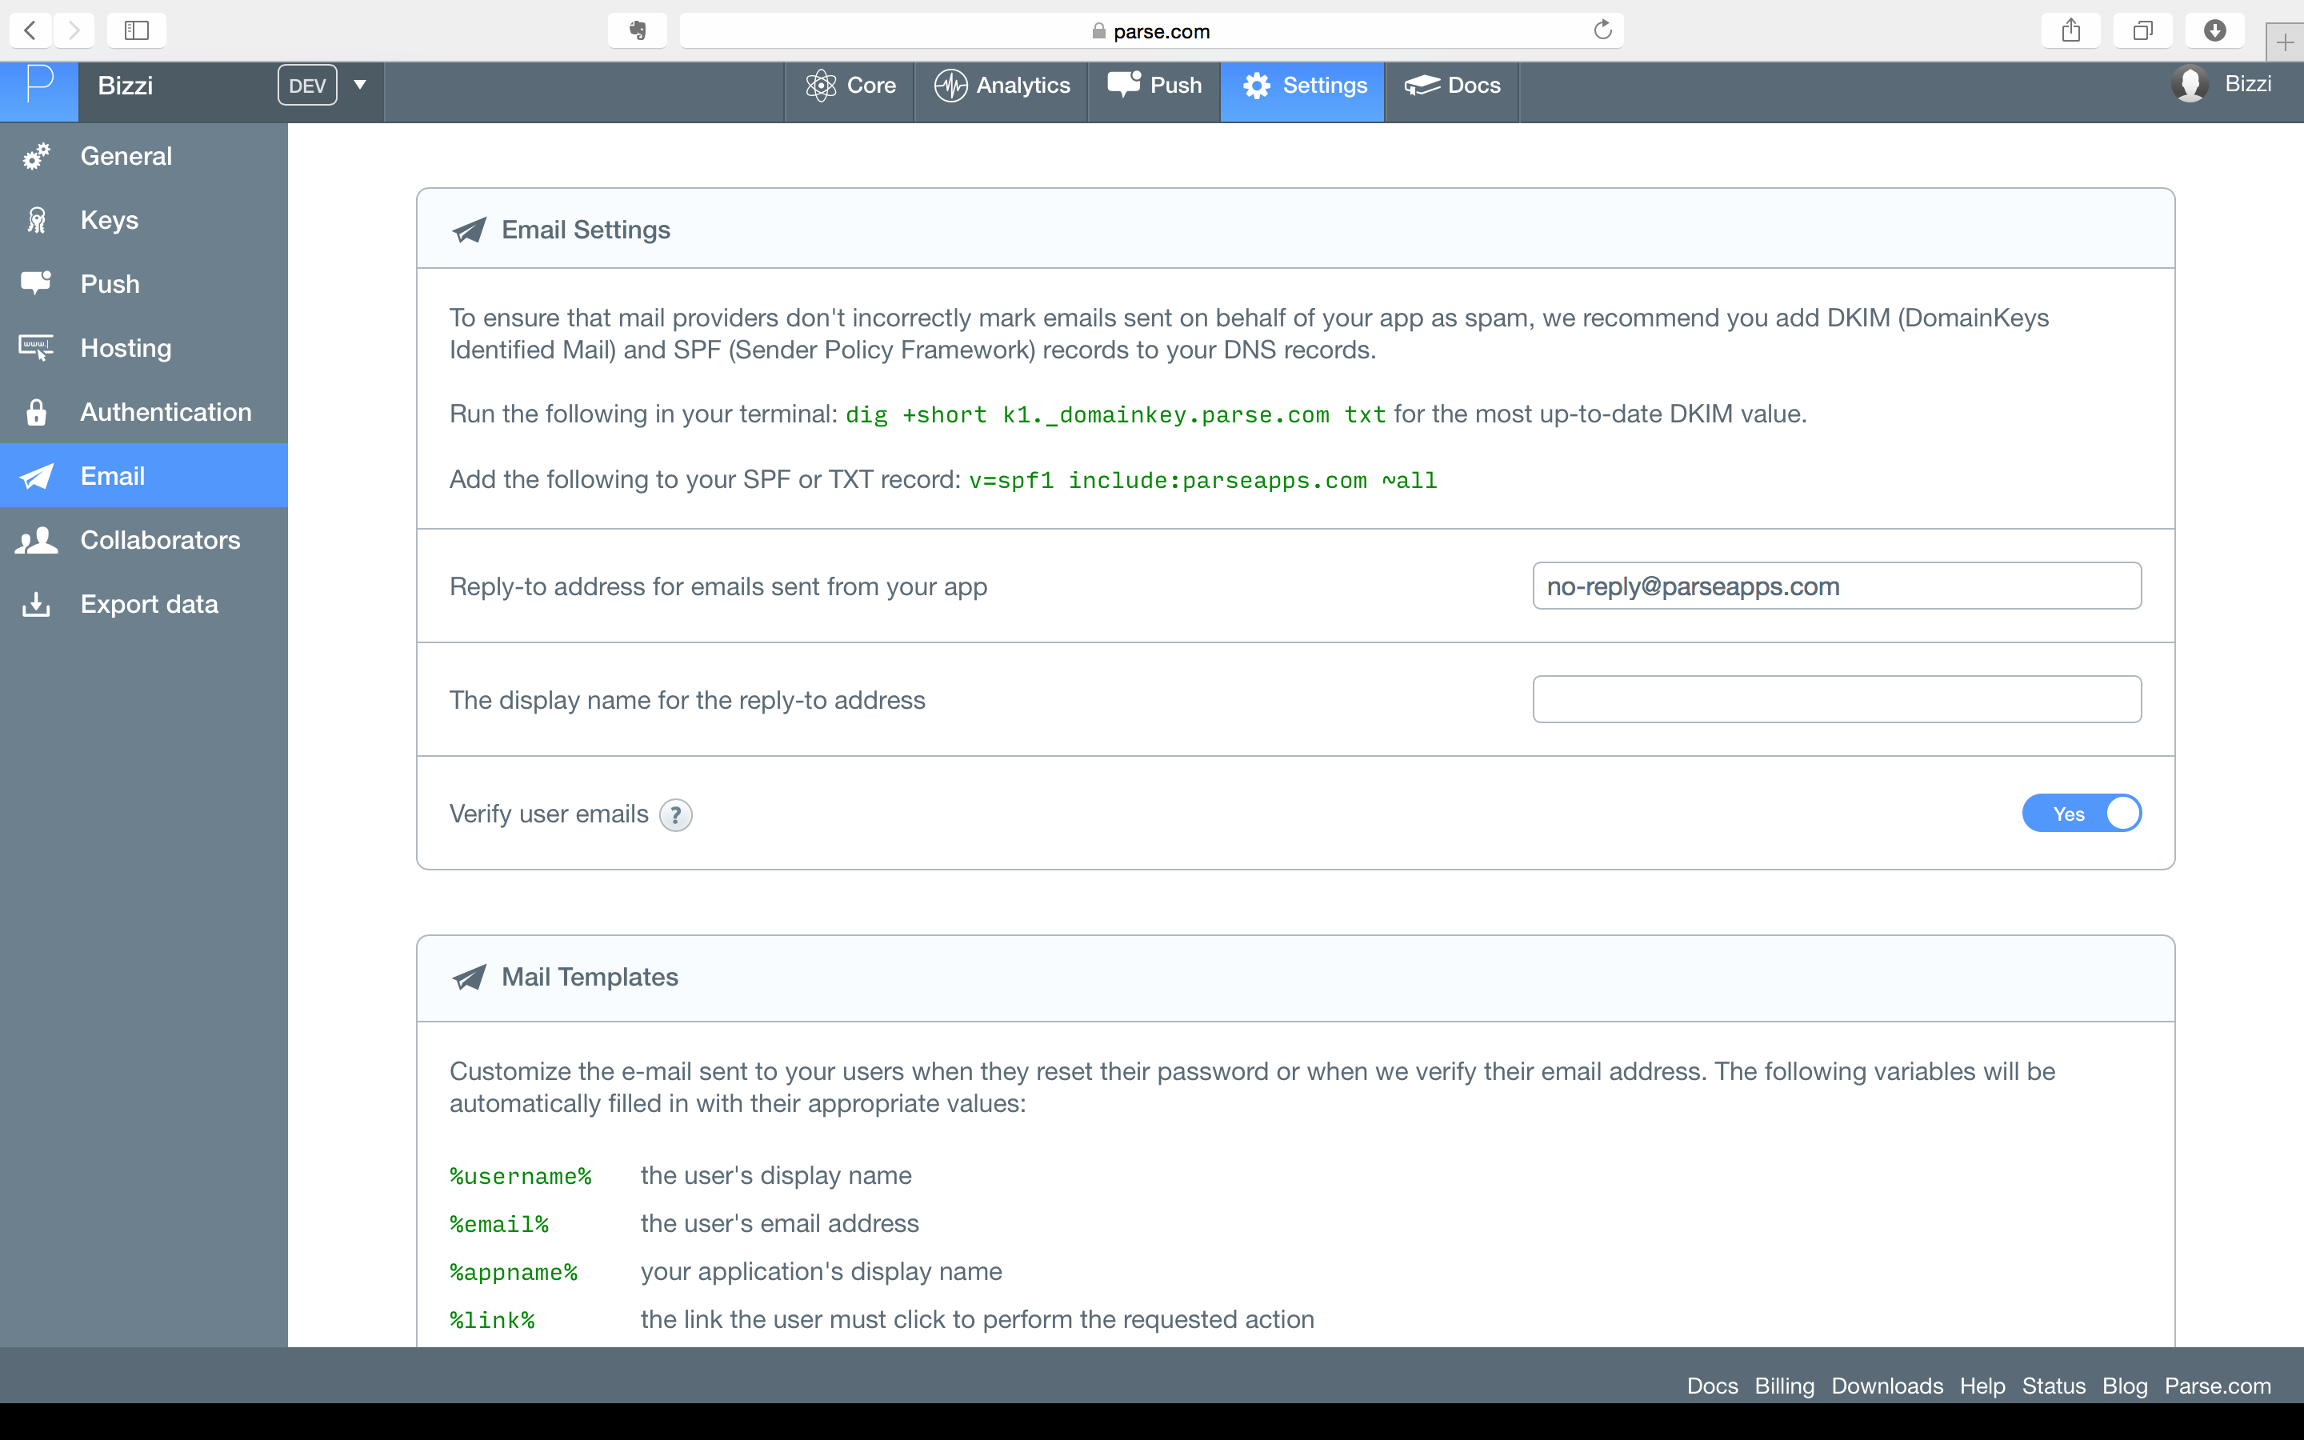 Parse + Native UICollectionView + Uploading images — Part 2 of 2